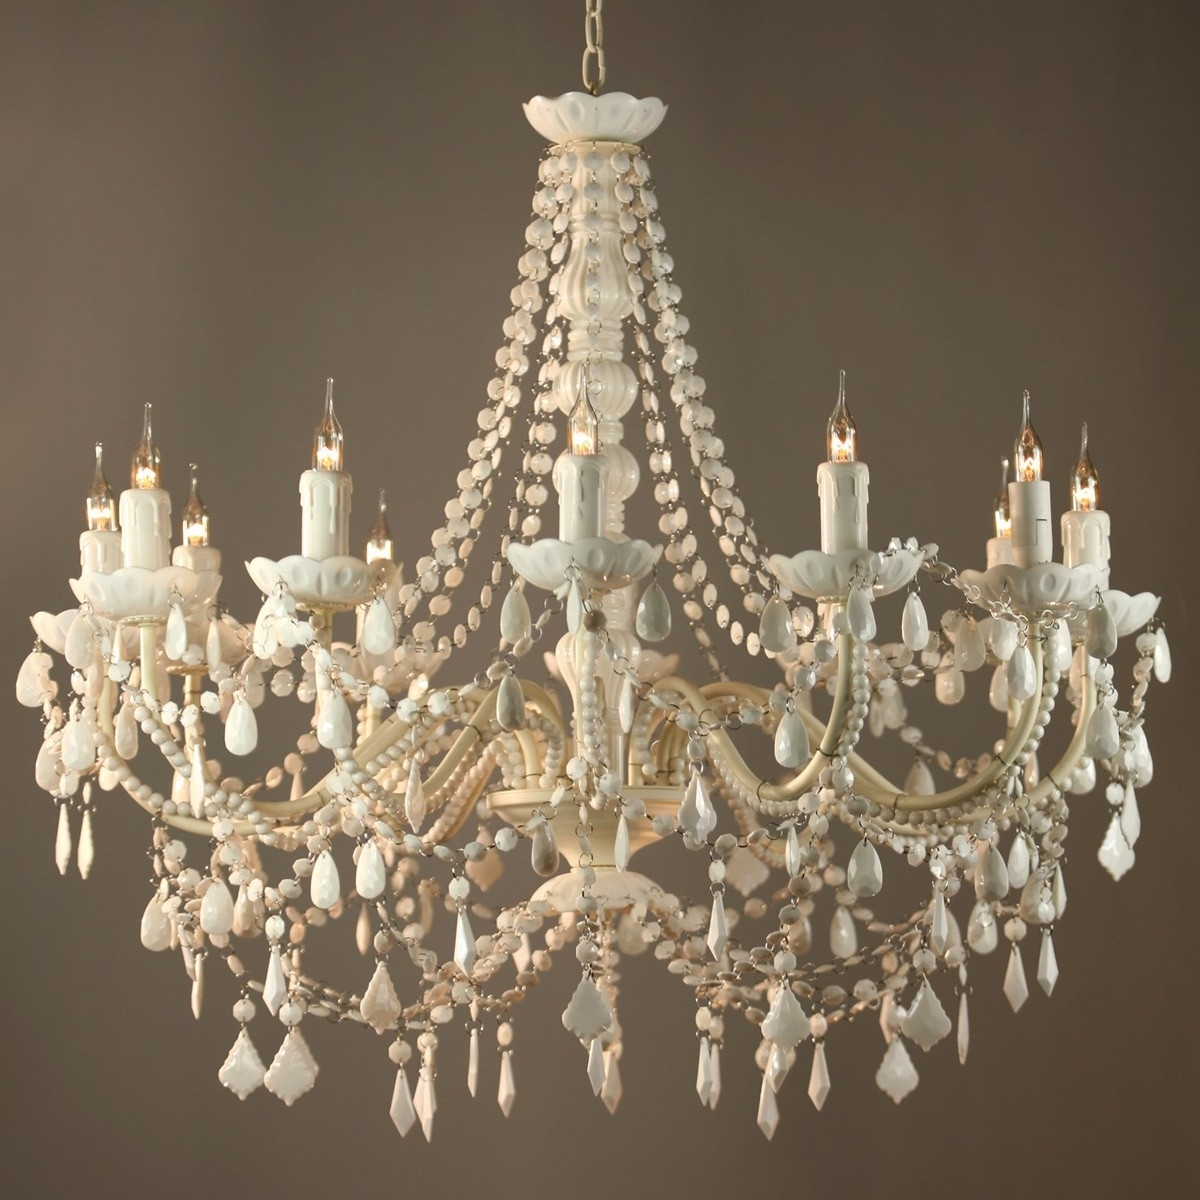 Antique Chandeliers For Your House Within Most Popular Antique Style Chandeliers (Gallery 1 of 20)